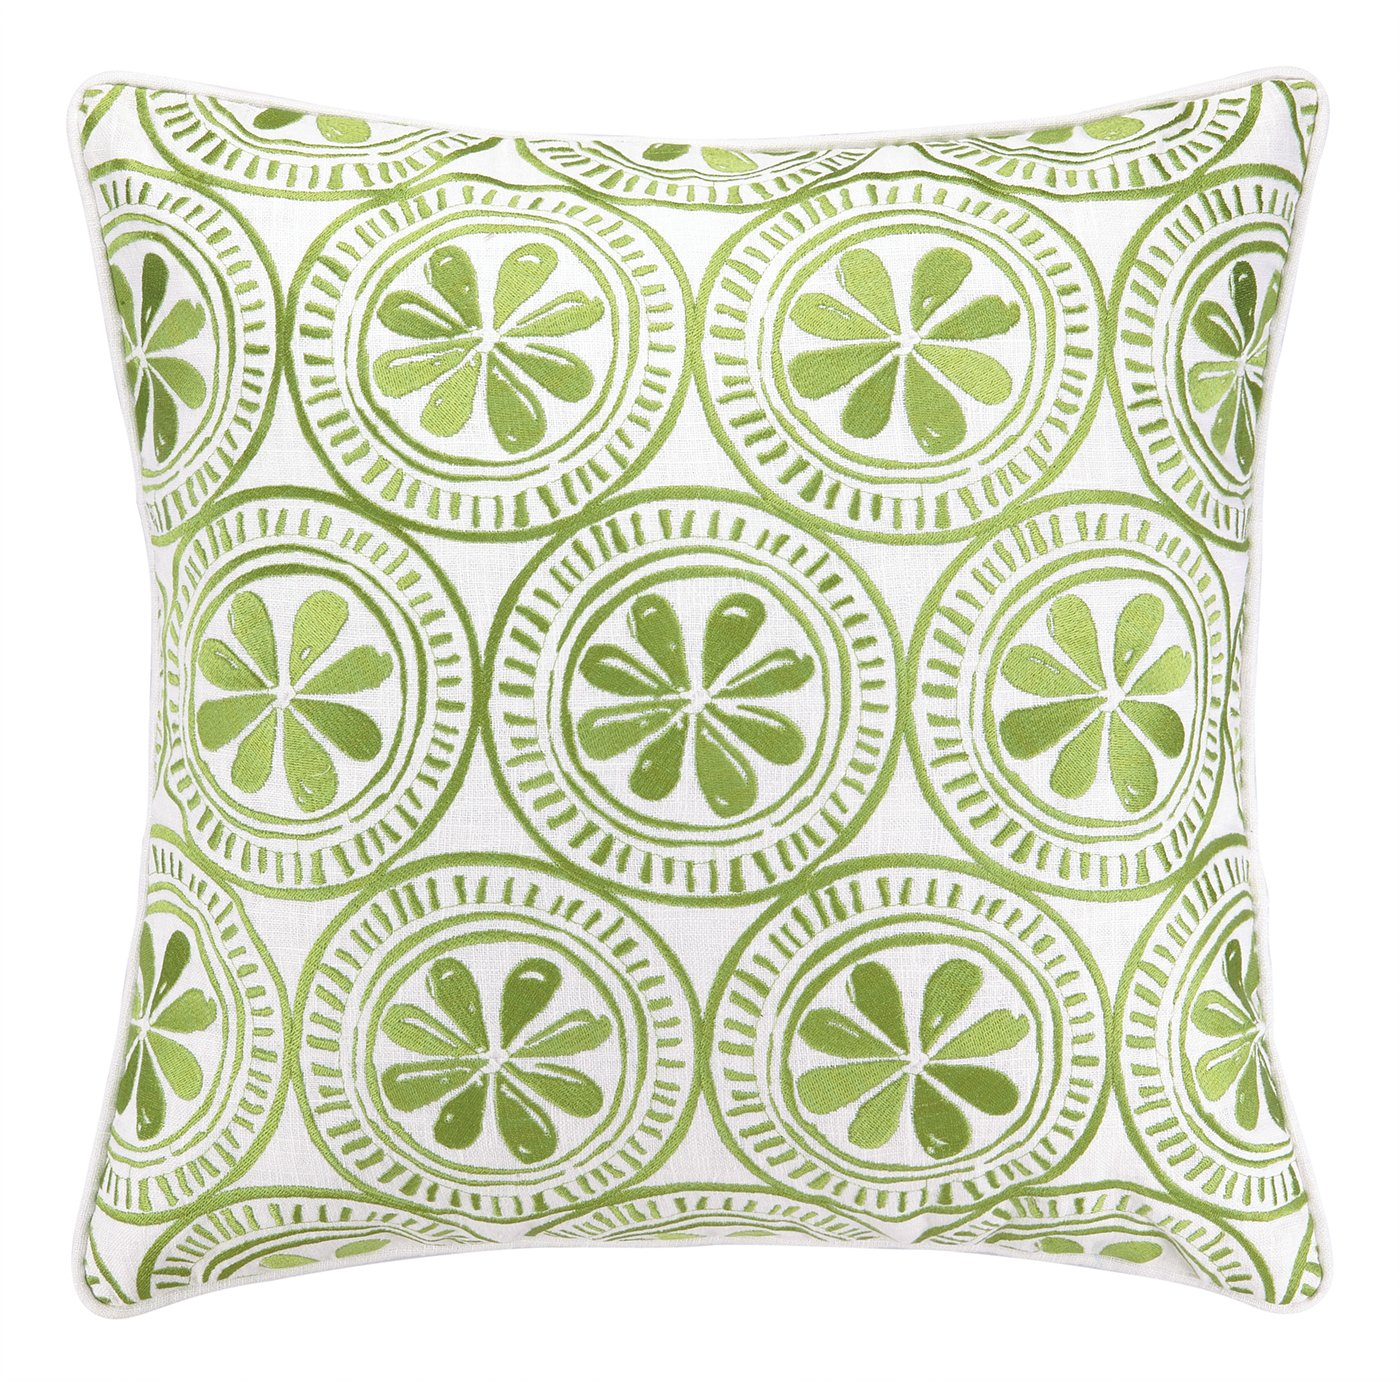 Kate Nelligan Sand Dollar Embroidered Linen Pillow 20 by 20-Inch Green